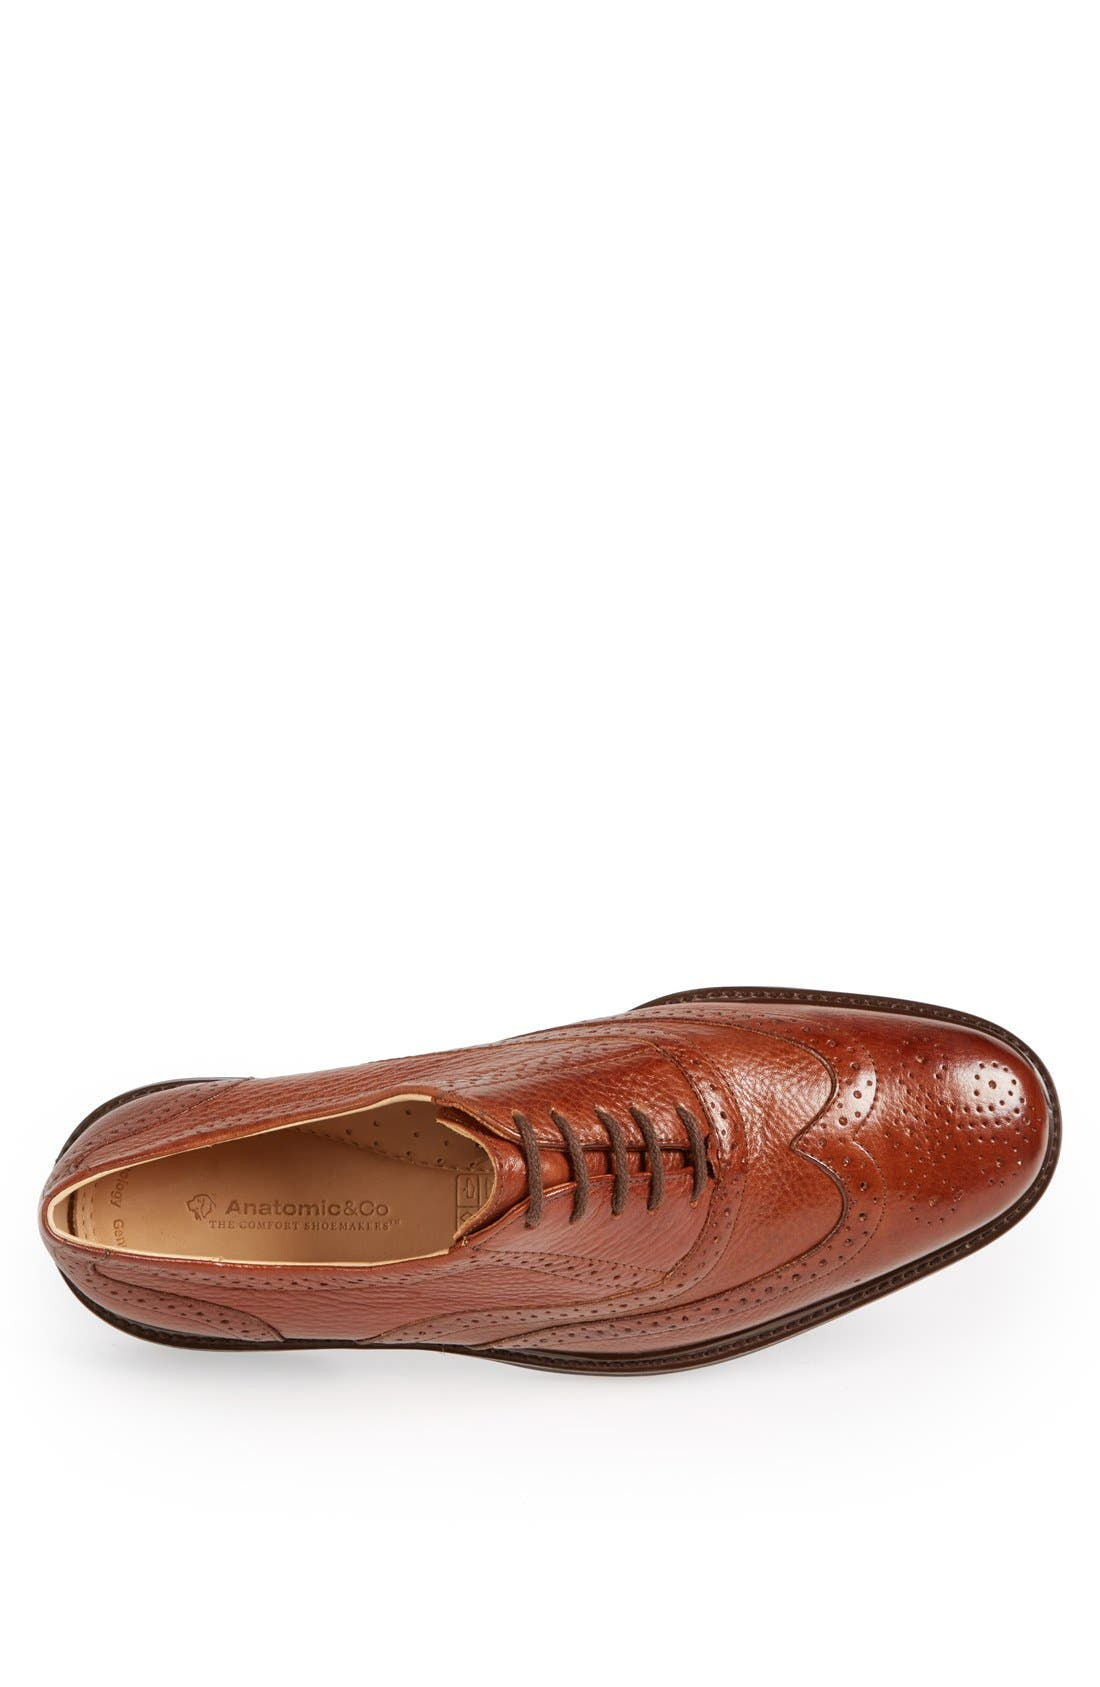 Alternate Image 3  - Anatomic & Co 'Gabriel' Wingtip (Men)